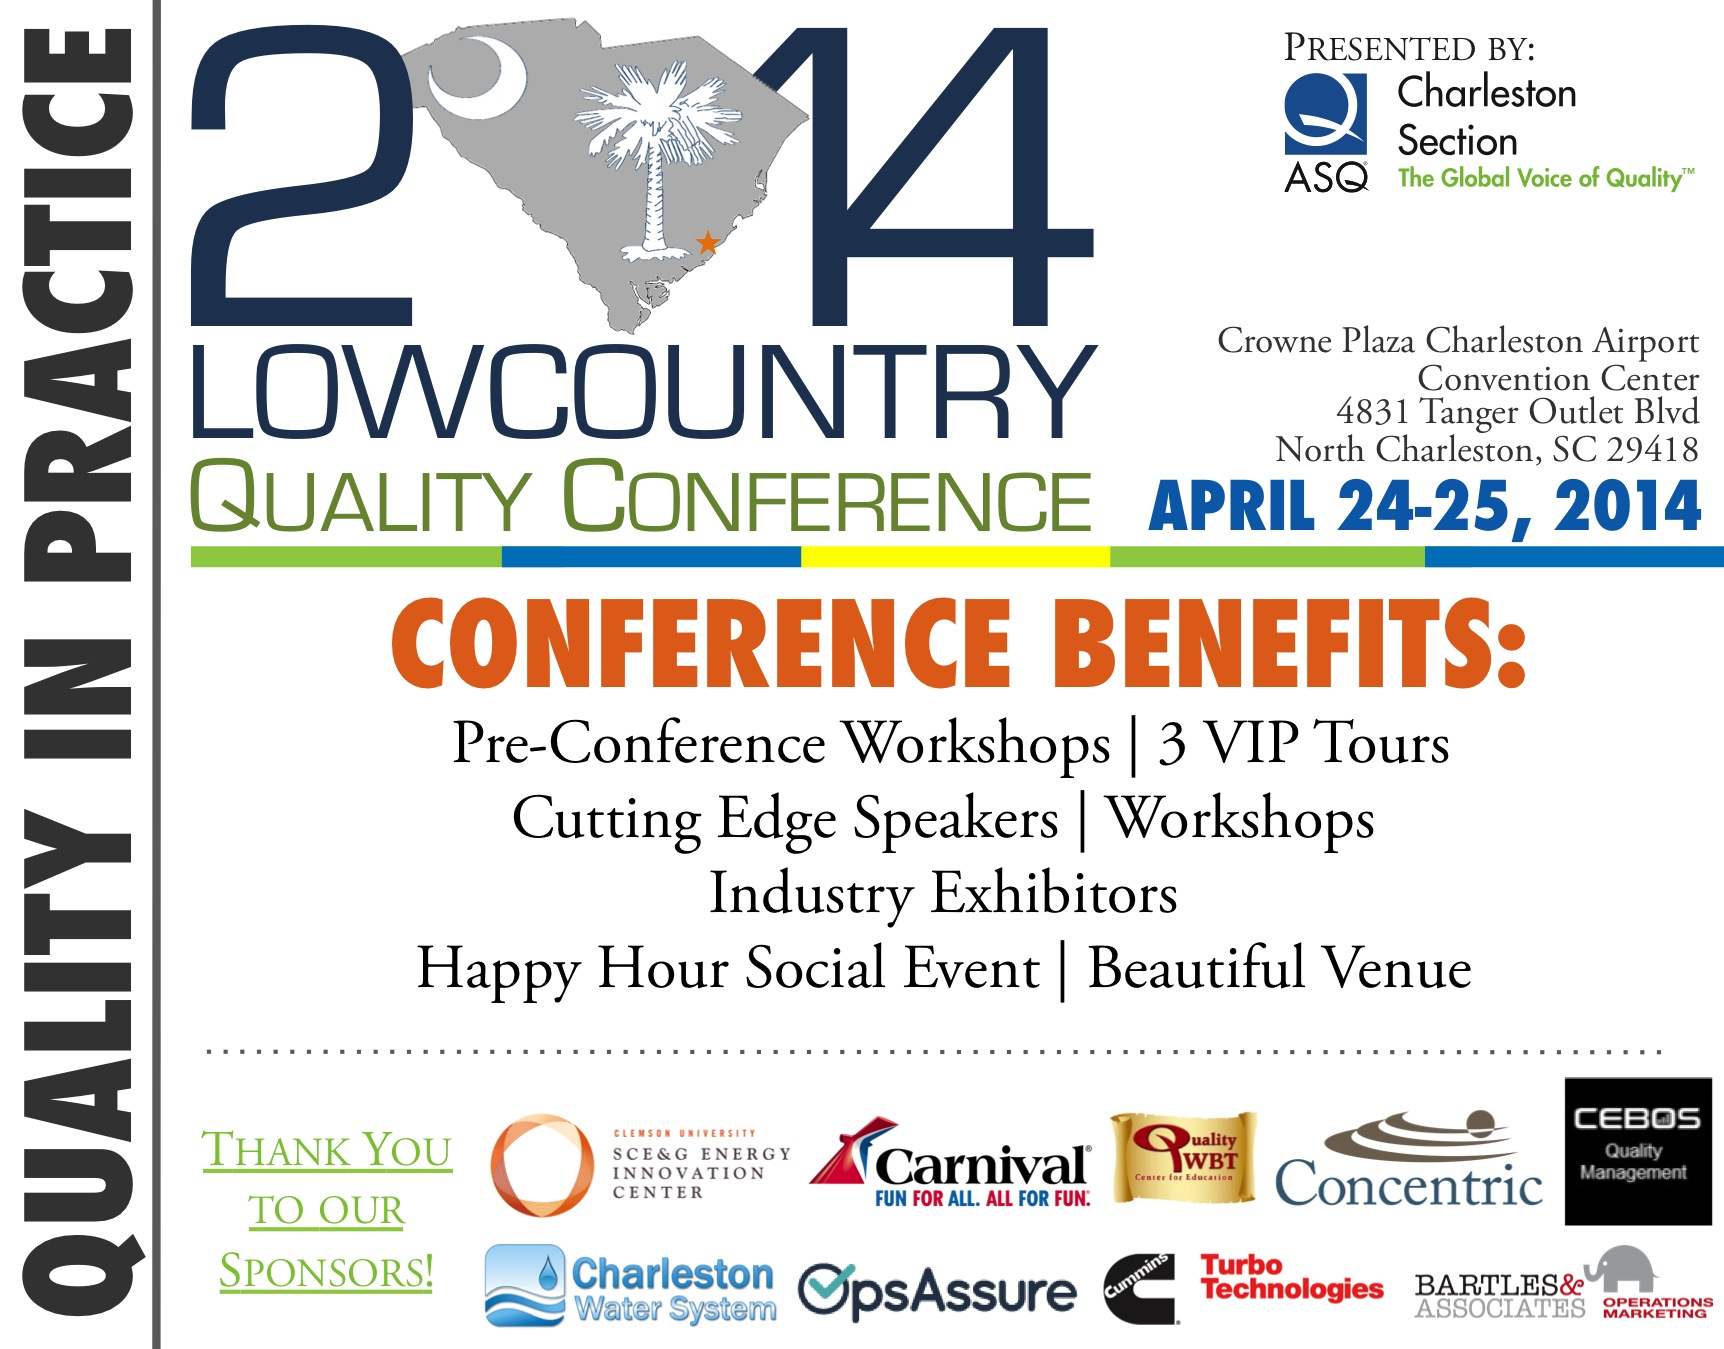 Lowcountry Quality Conference